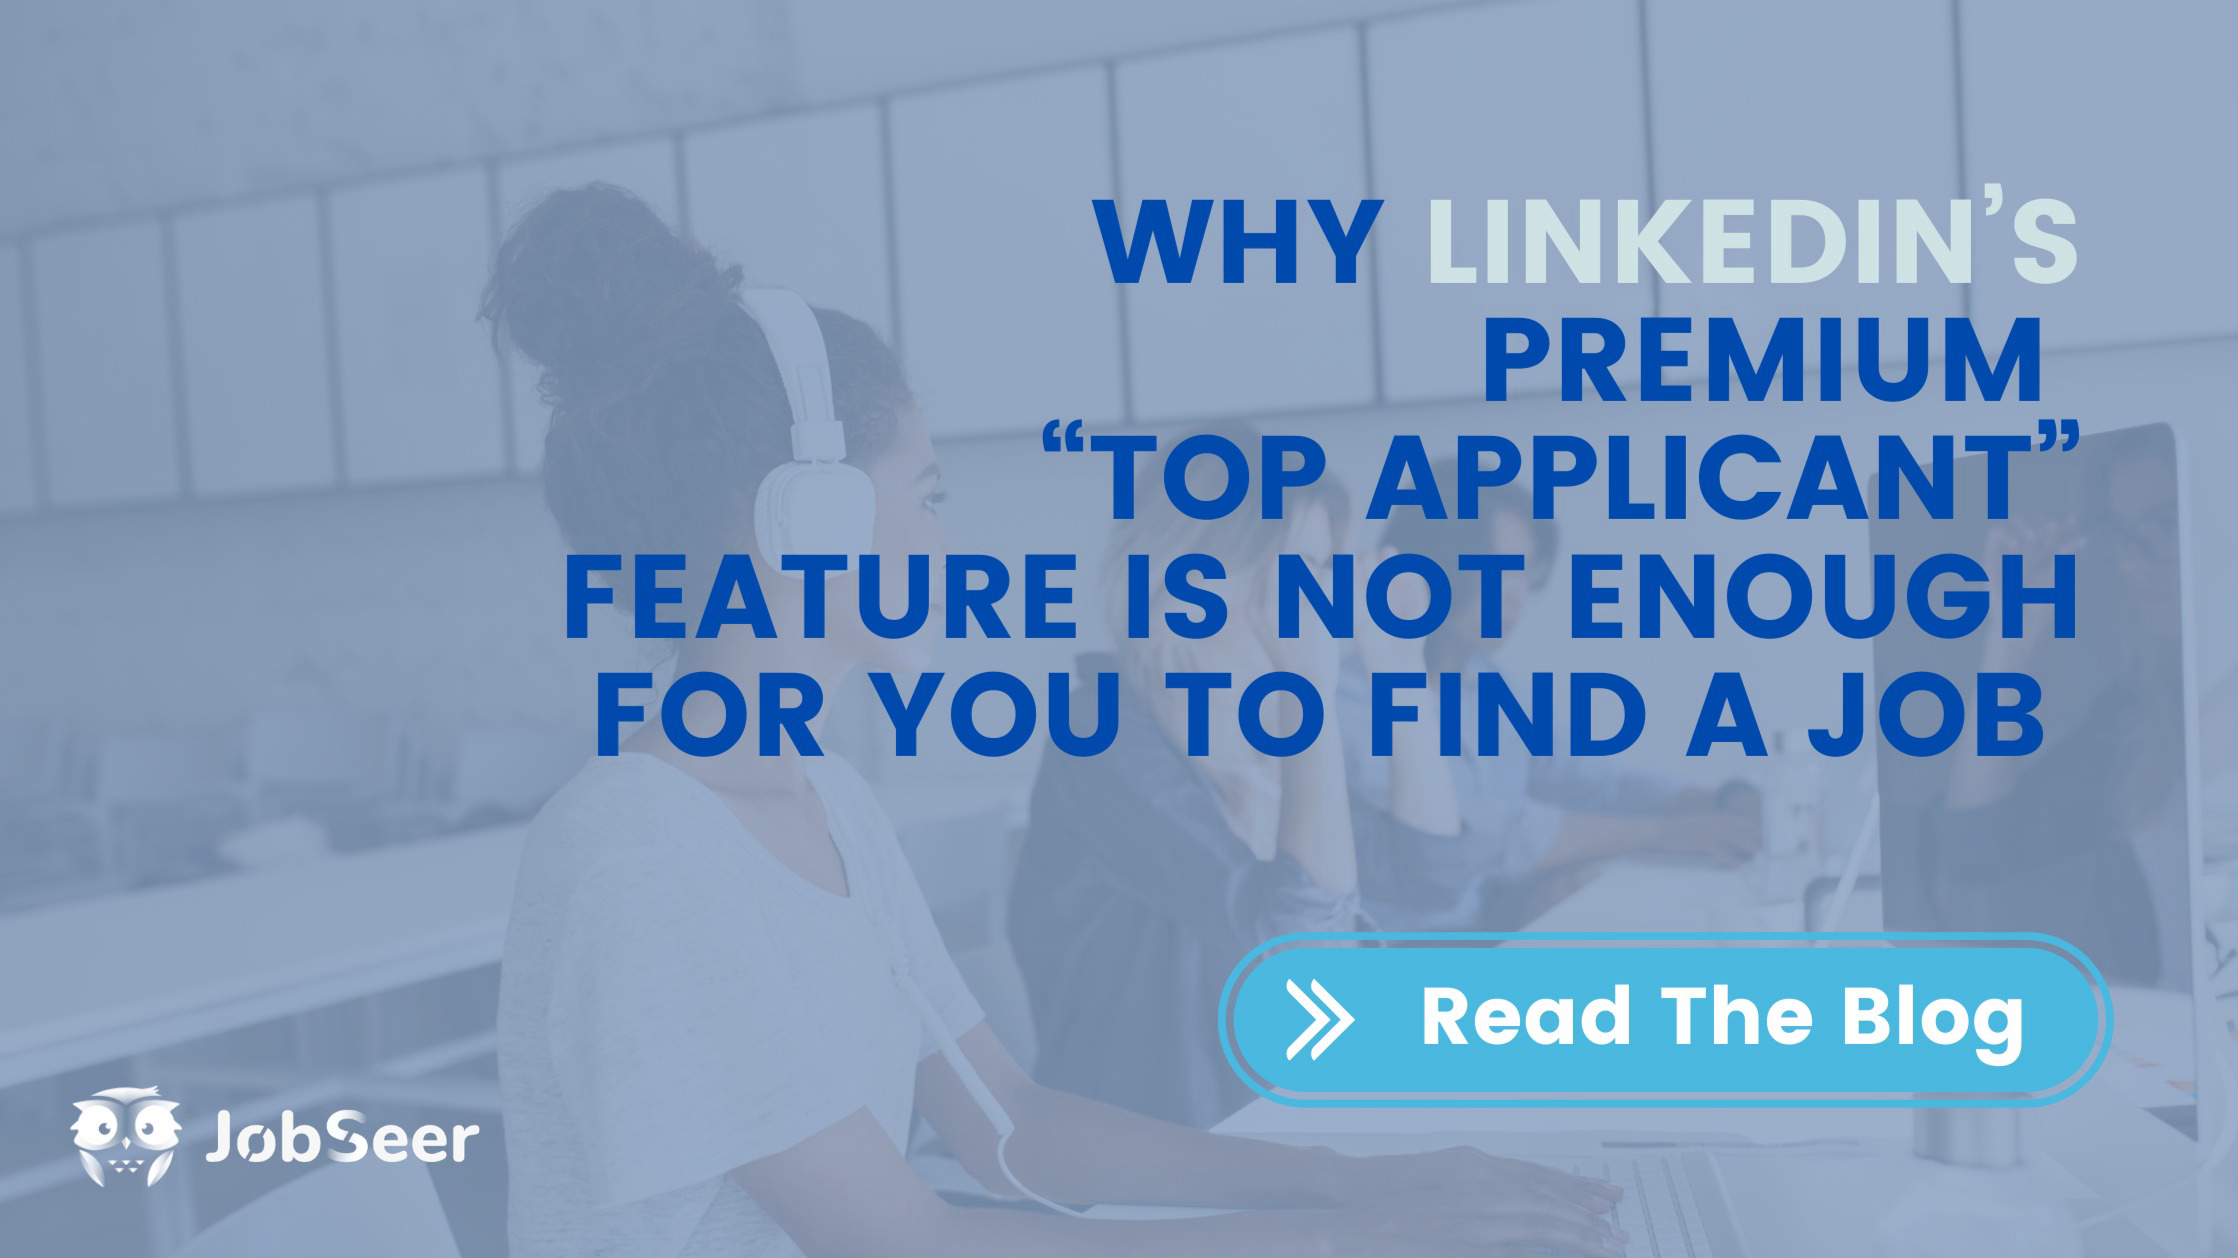 why-linkedlns-top-applicant-feature-is-not-enough-for-you-to-find-a-job